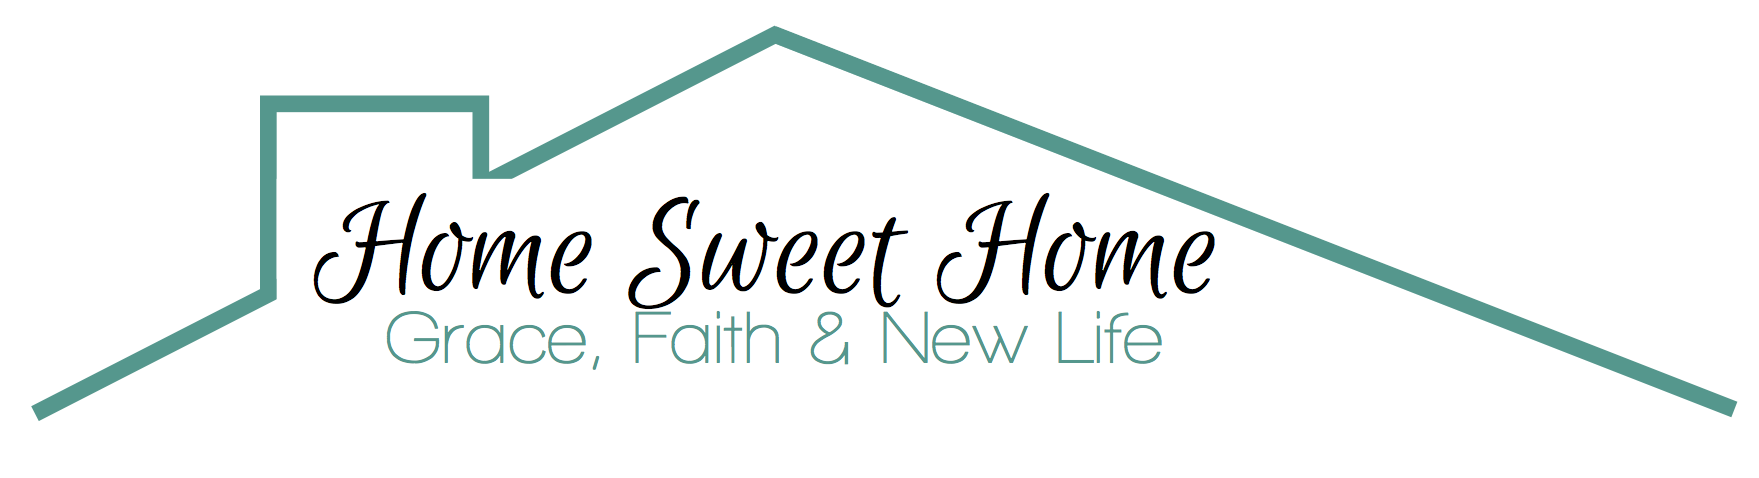 Home sweet home clipart png banner transparent library Women and Home: Home Sweet Home Sign Clip Art home sweet home ... banner transparent library